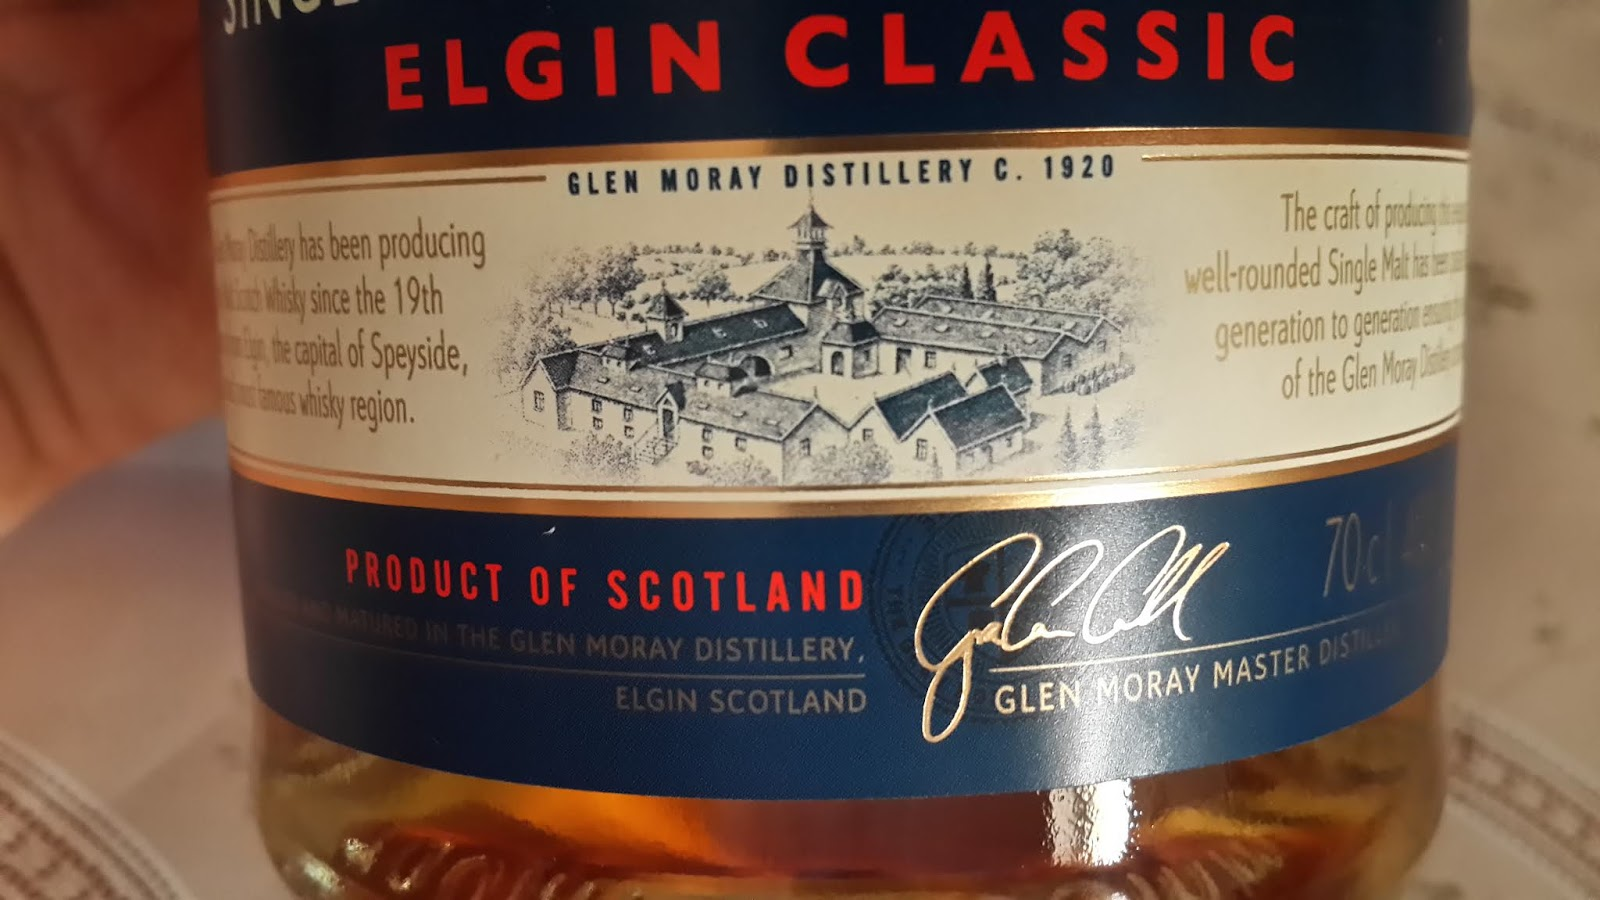 the overall artwork design is to me frankly cheap looking the use of single colour blue and bland display of glen moray on the label gives it a cut rate